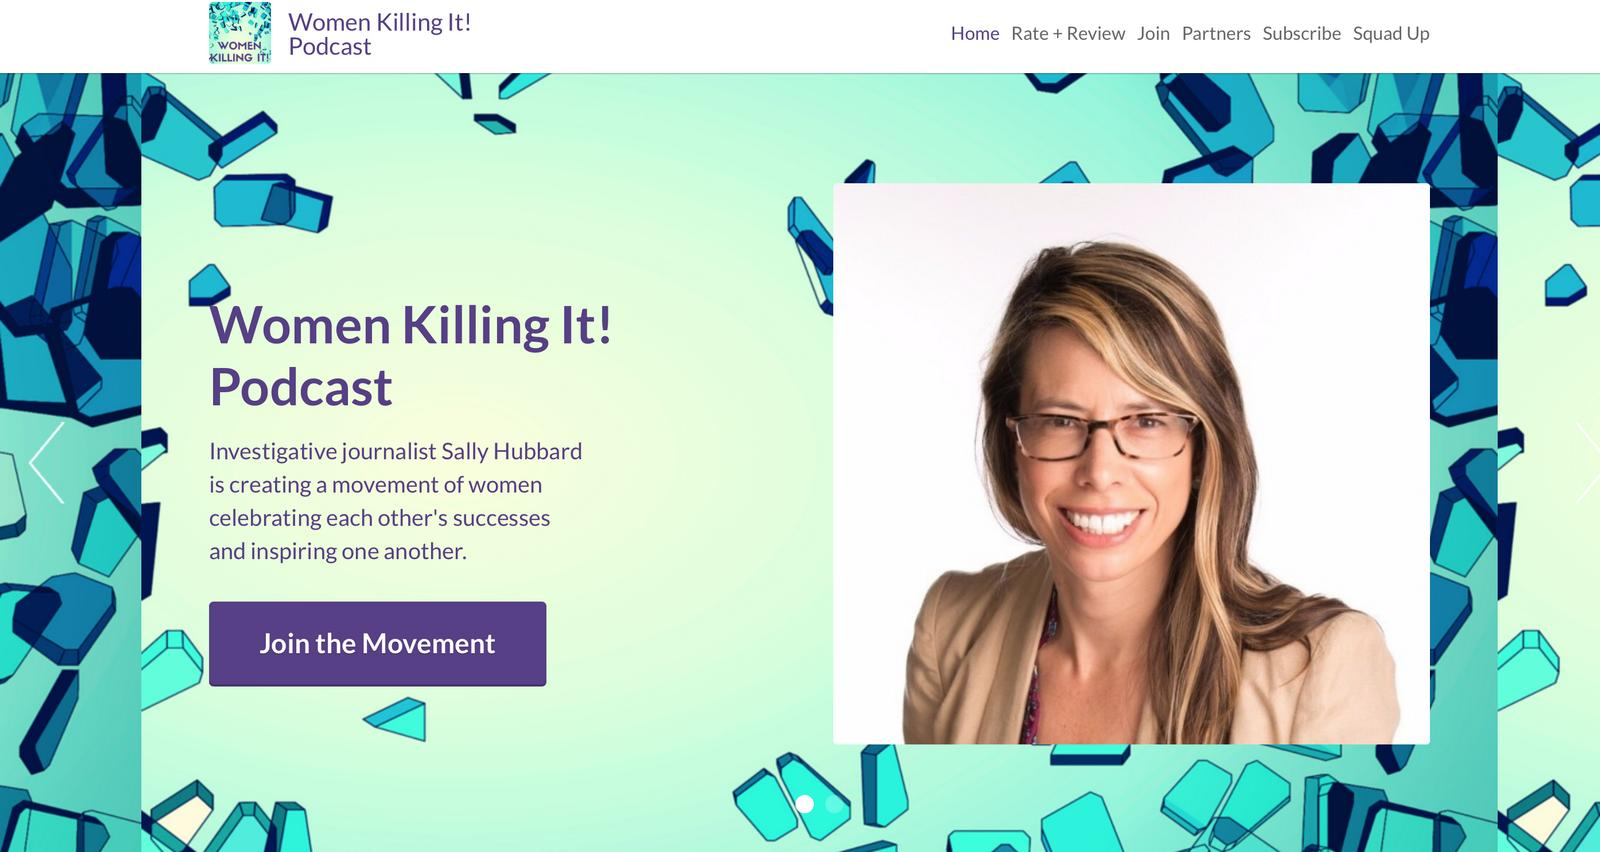 Women Killing It! Podcast Website Screenshot